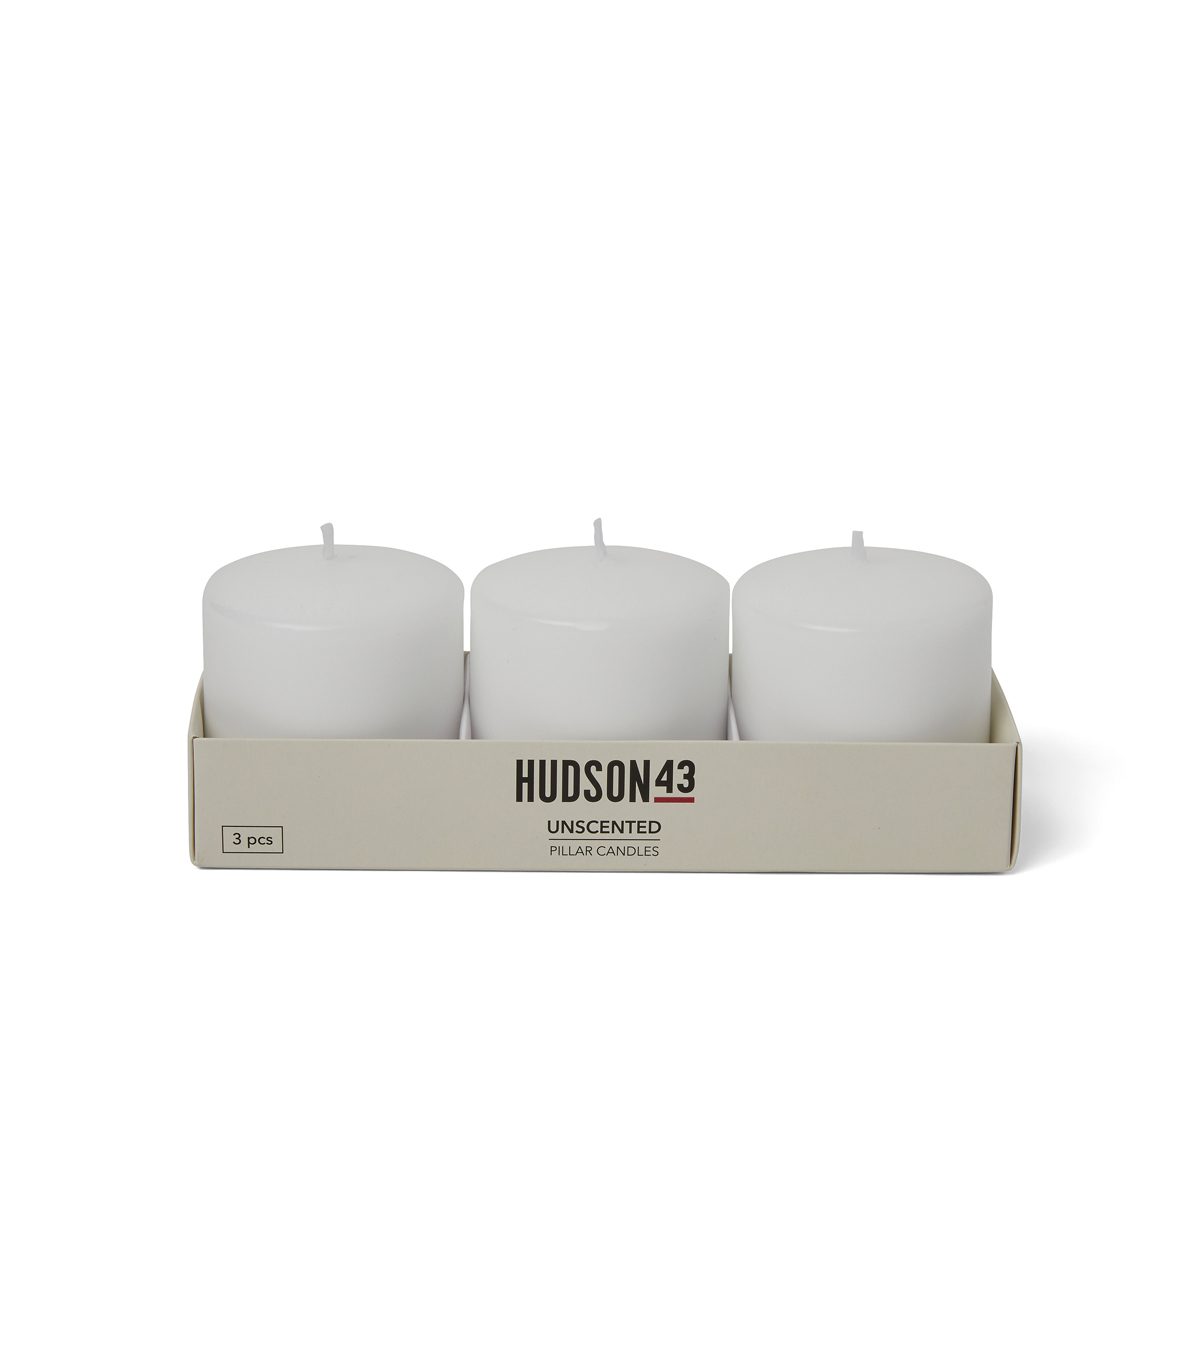 Hudson 43 Candle & Light Collection 3pk 3\u0022x3\u0022 Pillar Candles-White